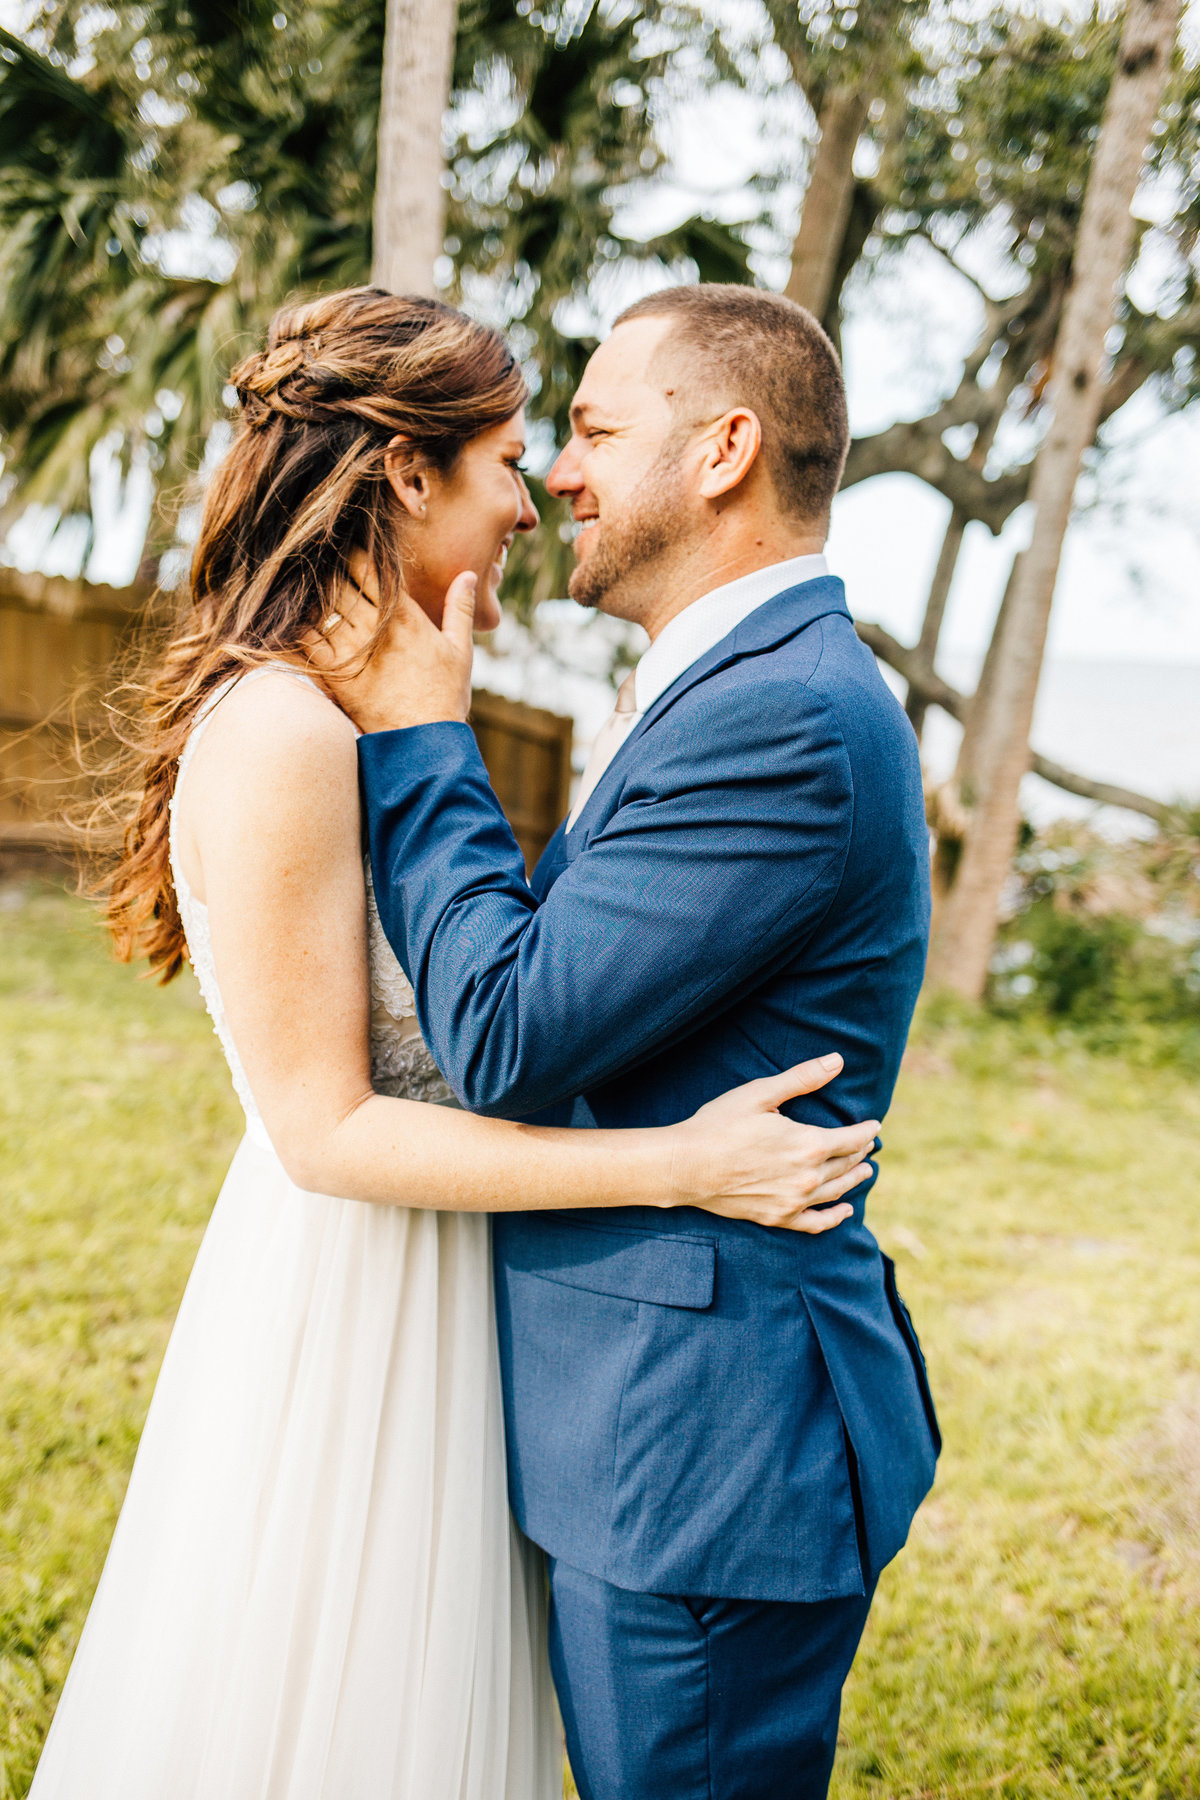 Kimberly_Hoyle_Photography_Kemp_Titusville_Florida_Wedding-12